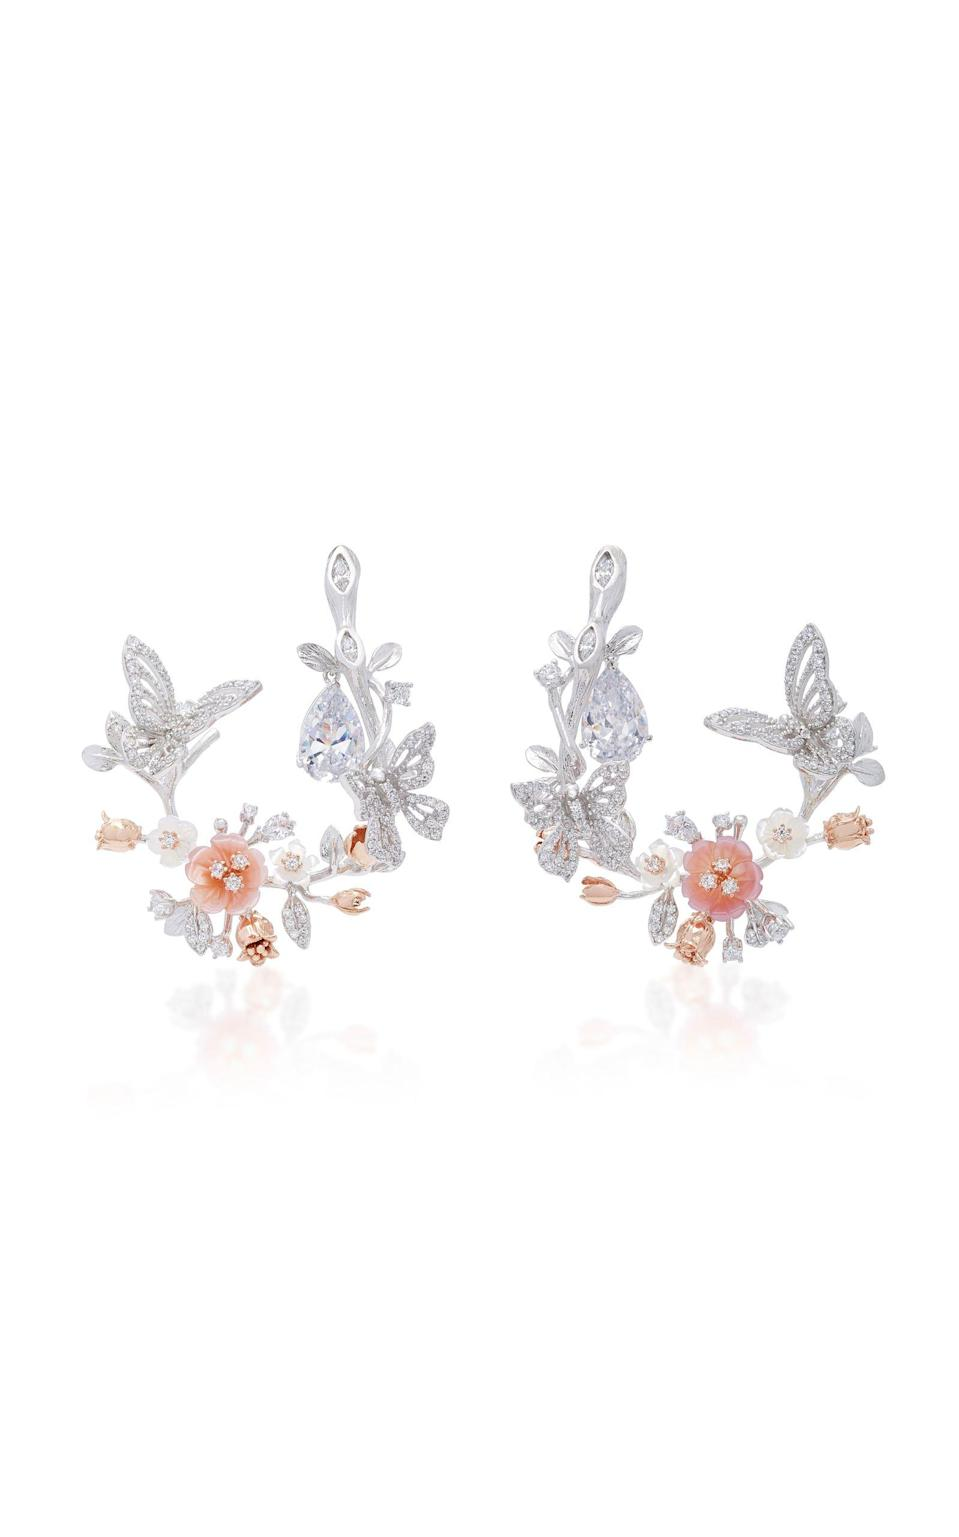 """<p><strong>Anabela Chan</strong></p><p>modaoperandi.com</p><p><strong>$2155.00</strong></p><p><a href=""""https://go.redirectingat.com?id=74968X1596630&url=https%3A%2F%2Fwww.modaoperandi.com%2Fanabela-chan-gg17%2Fm-o-exclusive-18k-white-gold-butterfly-garland-earrings&sref=https%3A%2F%2Fwww.harpersbazaar.com%2Fwedding%2Fplanning%2Fg33647953%2Ffourth-anniversary-gift-ideas%2F"""" rel=""""nofollow noopener"""" target=""""_blank"""" data-ylk=""""slk:SHOP NOW"""" class=""""link rapid-noclick-resp"""">SHOP NOW</a></p><p>Nothing says happy anniversary like jewelry, and these are not only stunning—but also in theme.</p>"""